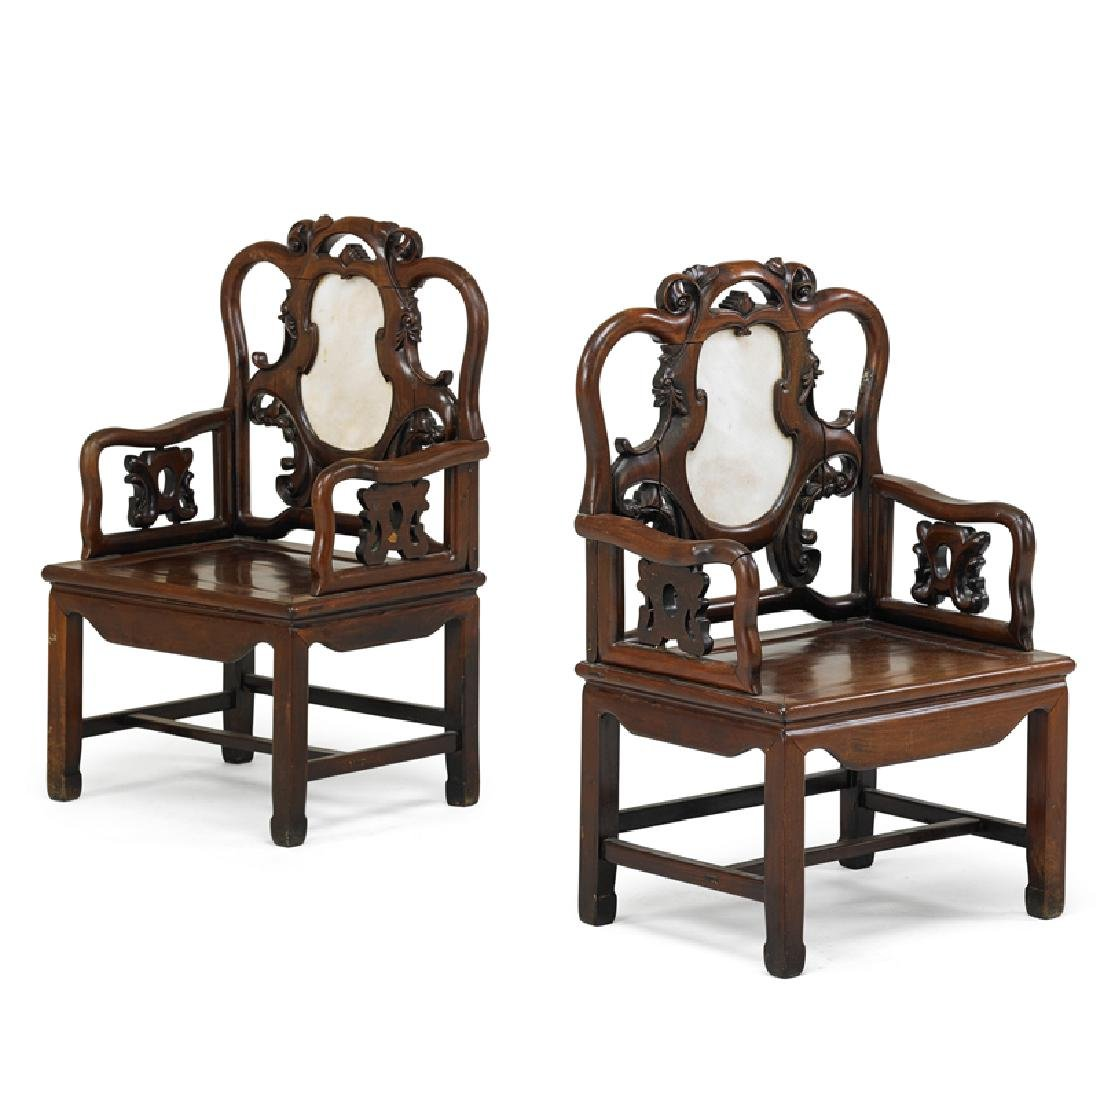 PAIR OF MARBLE INSET CHINESE HONGMU CHAIRS